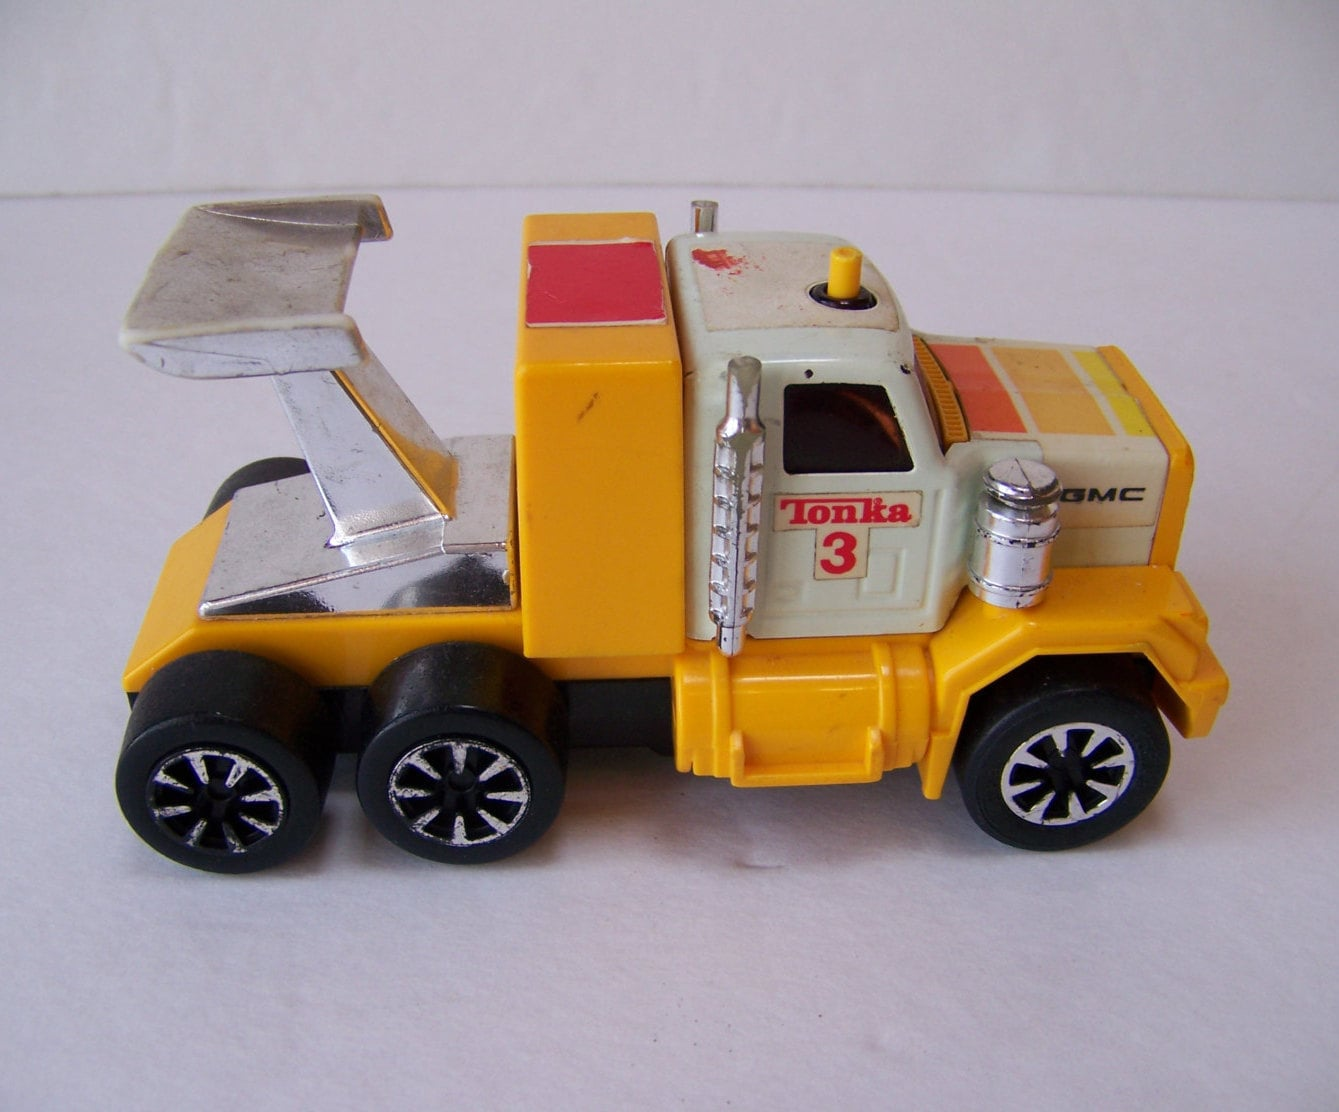 Toy Cars And Trucks : Vintage tonka toy truck made in japan llectible